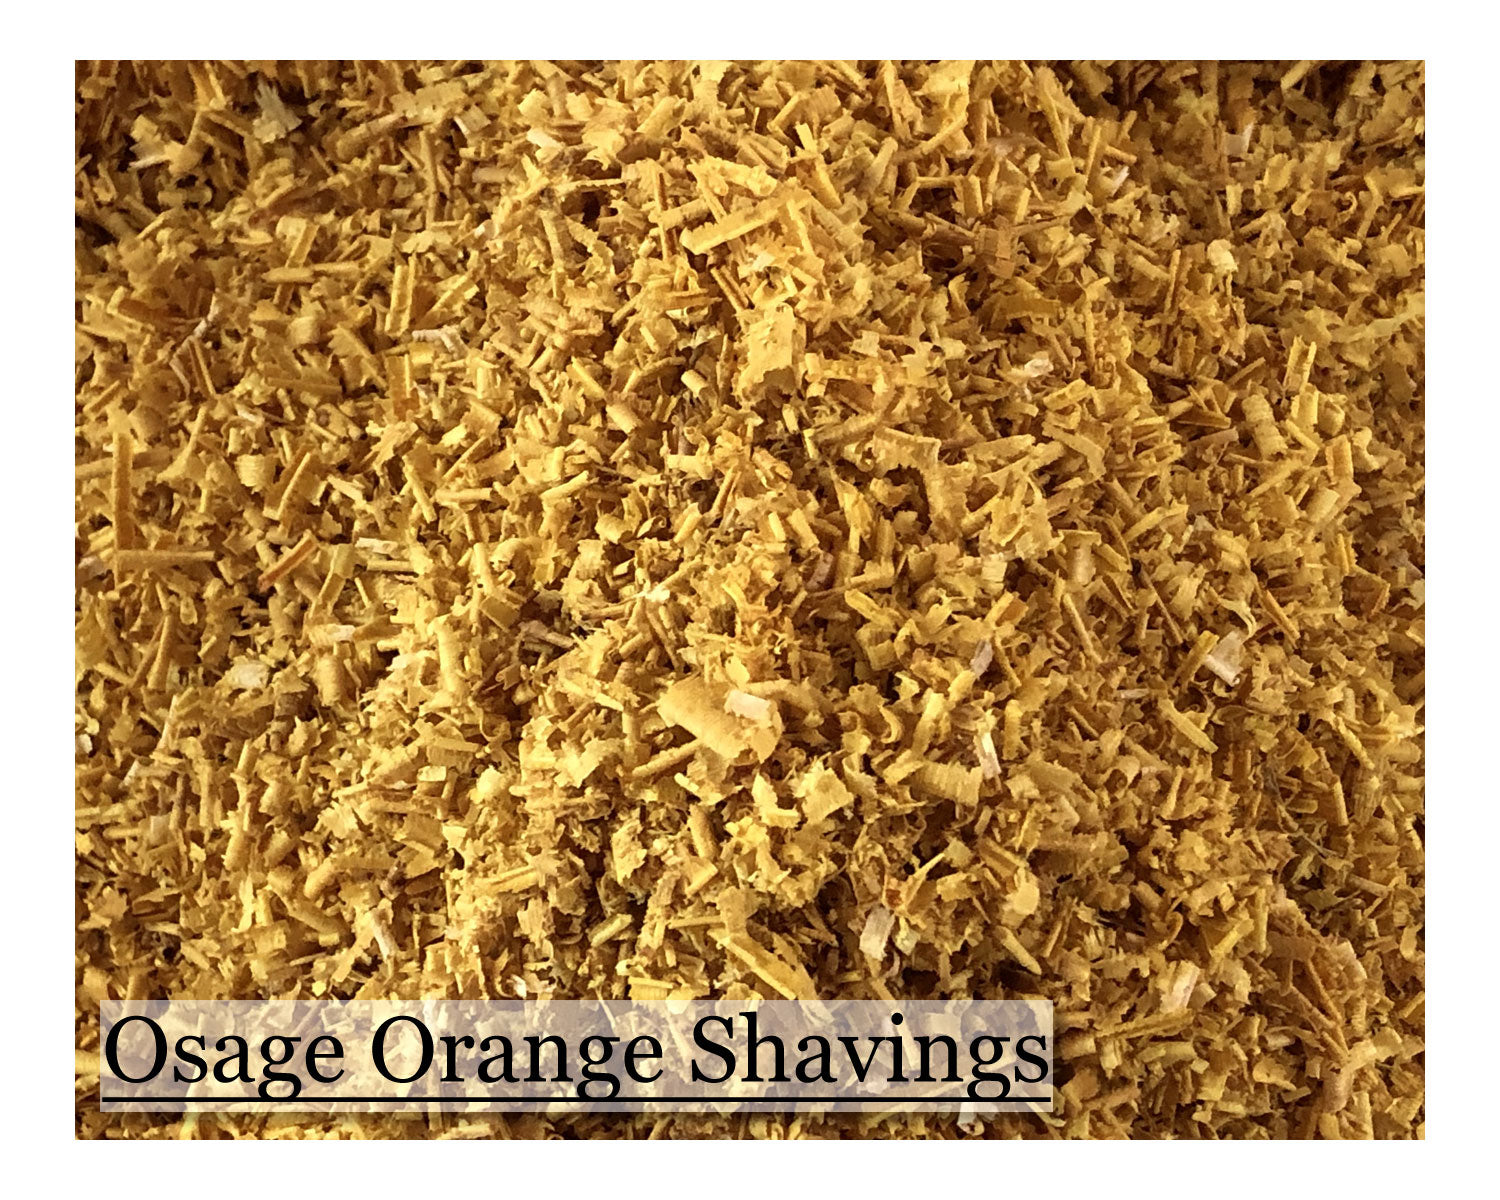 Osage Orange Shavings - 4 oz (113g)